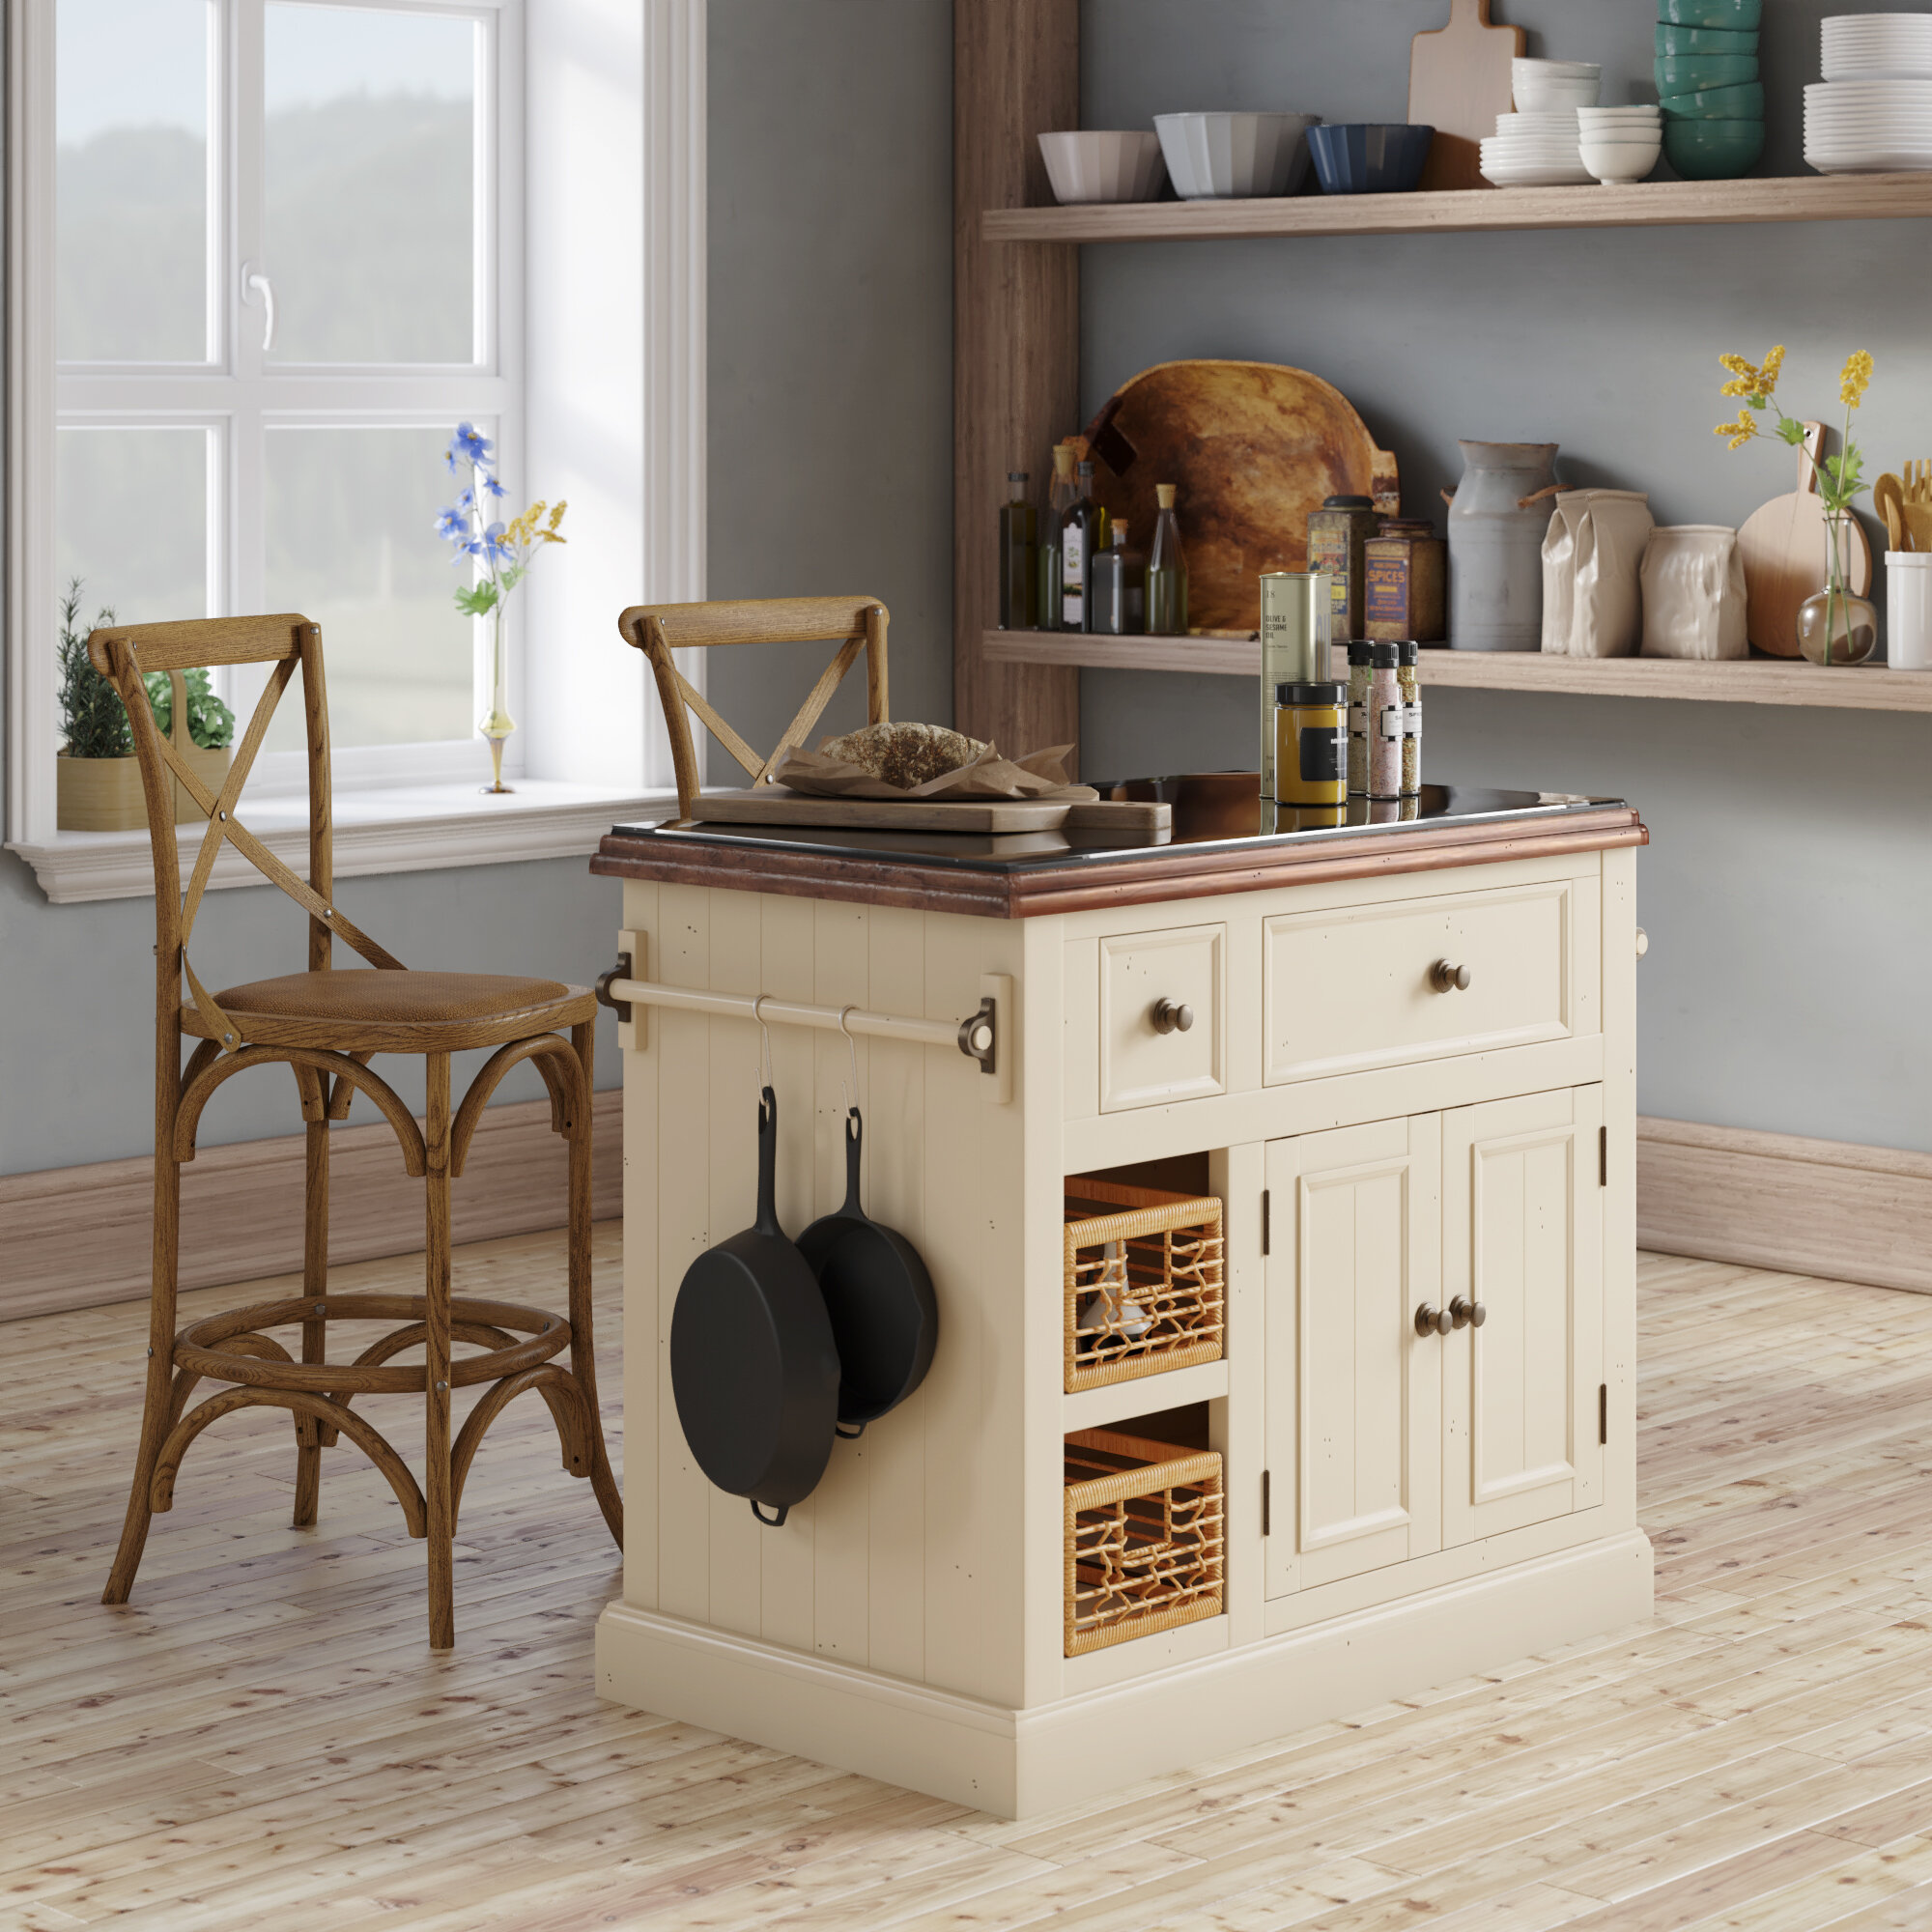 Laurel Foundry Modern Farmhouse Zula Kitchen Island With Granite Top Reviews Wayfair